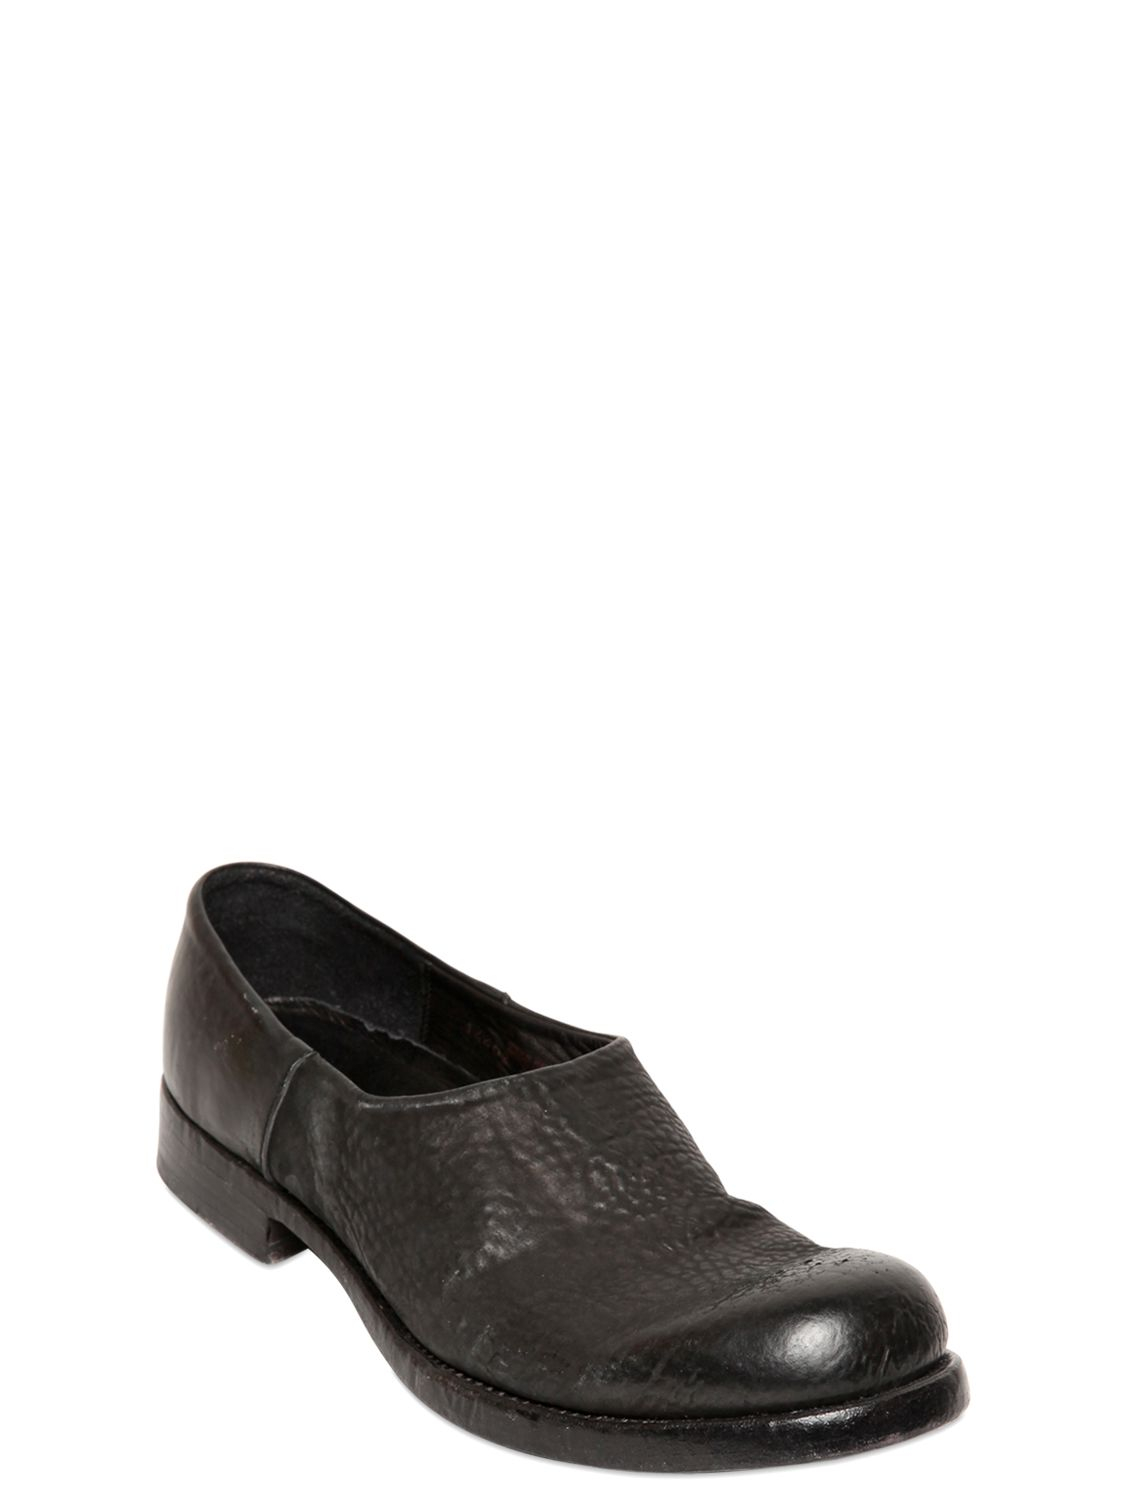 Lyst The Last Conspiracy 20mm Textured Leather Slip On